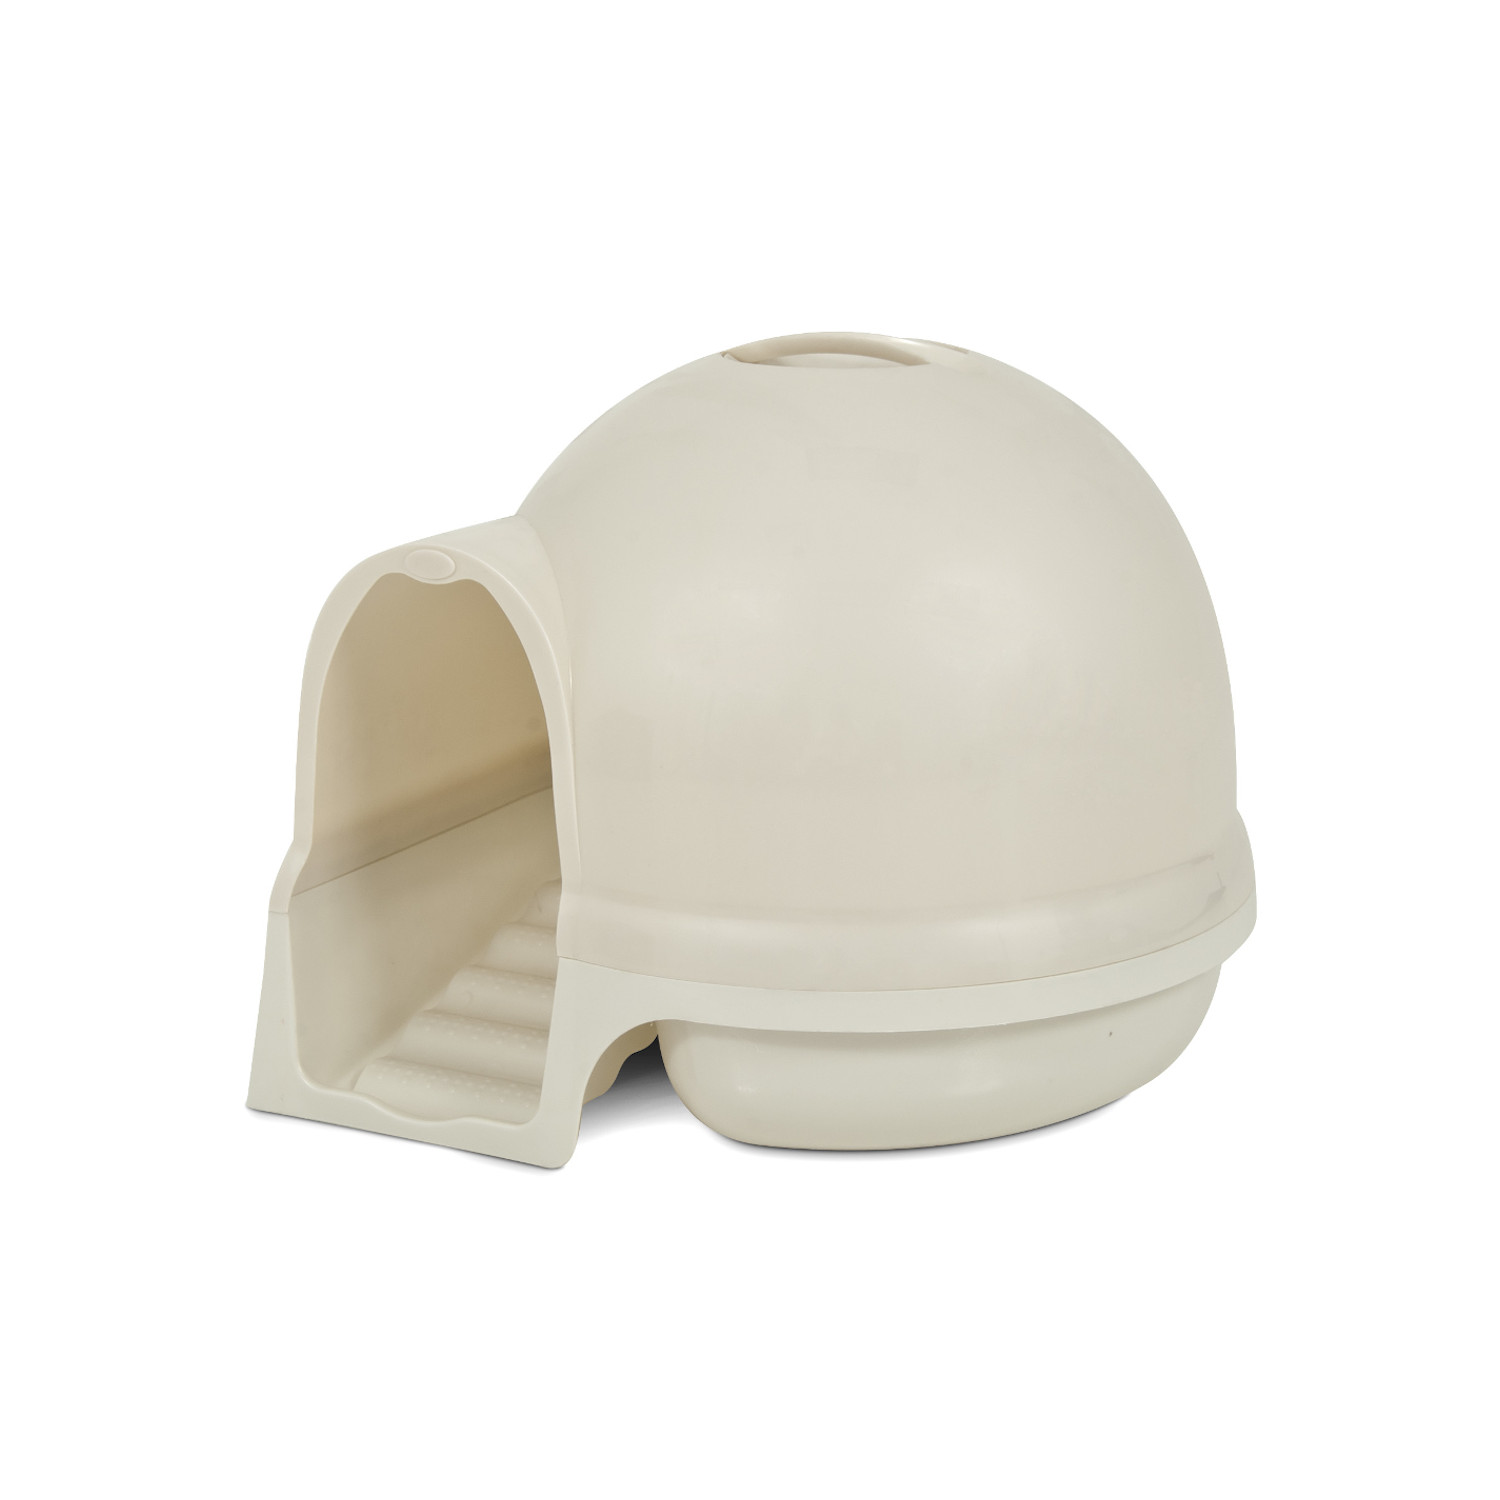 Cleanstop Dome - Petmate